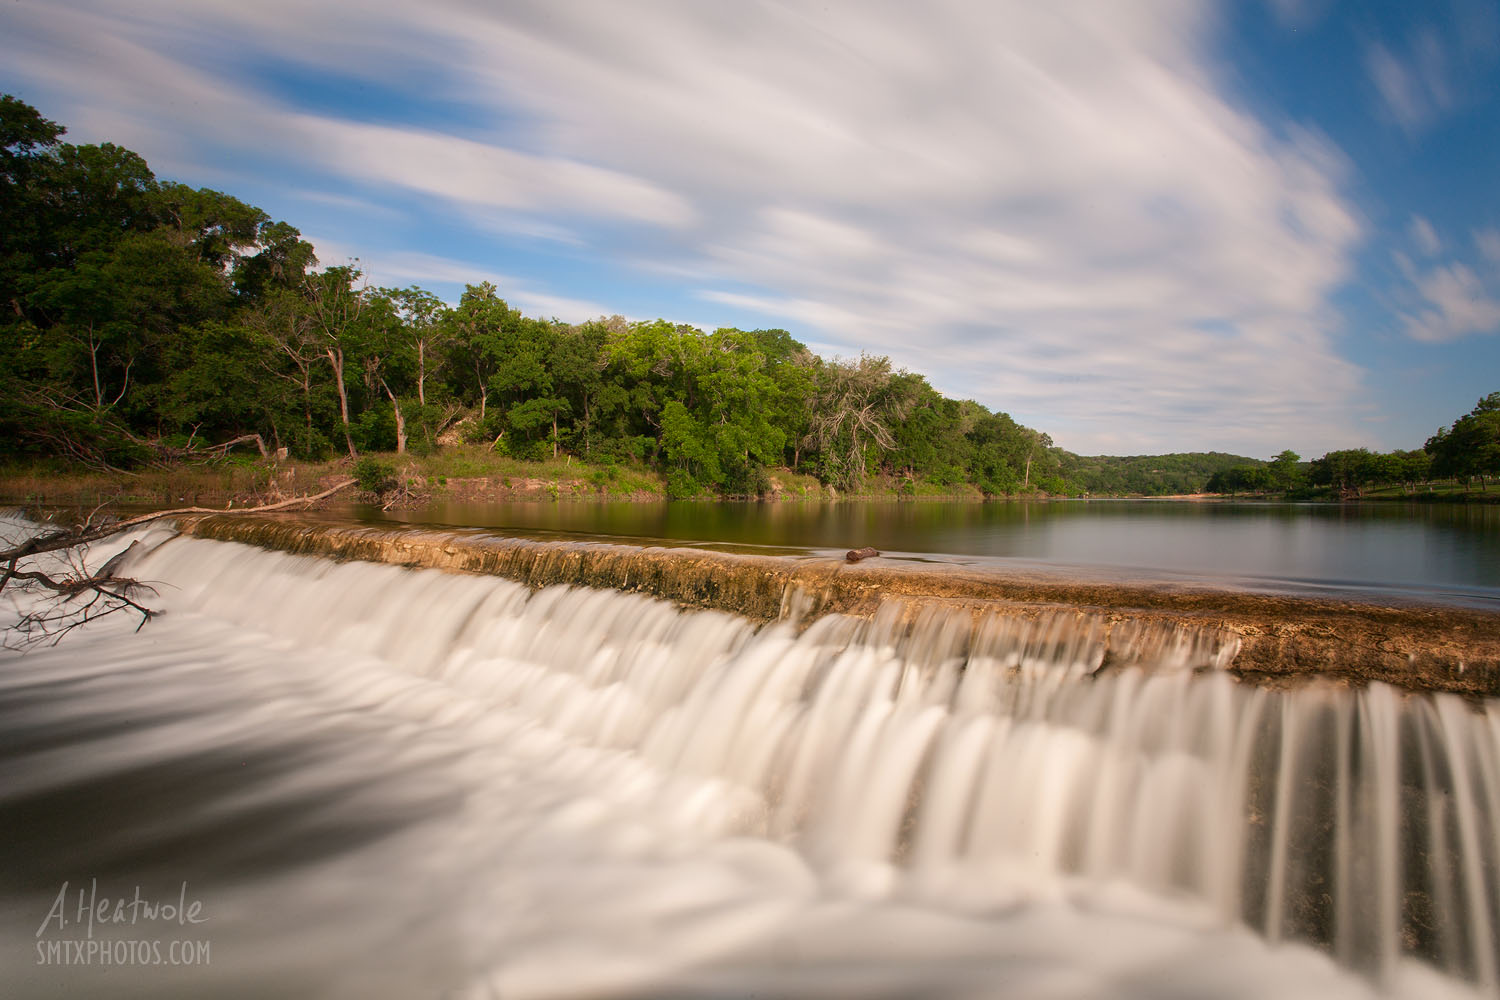 5 Mile Dam at Dudley Johnson Park in San Marcos, TX